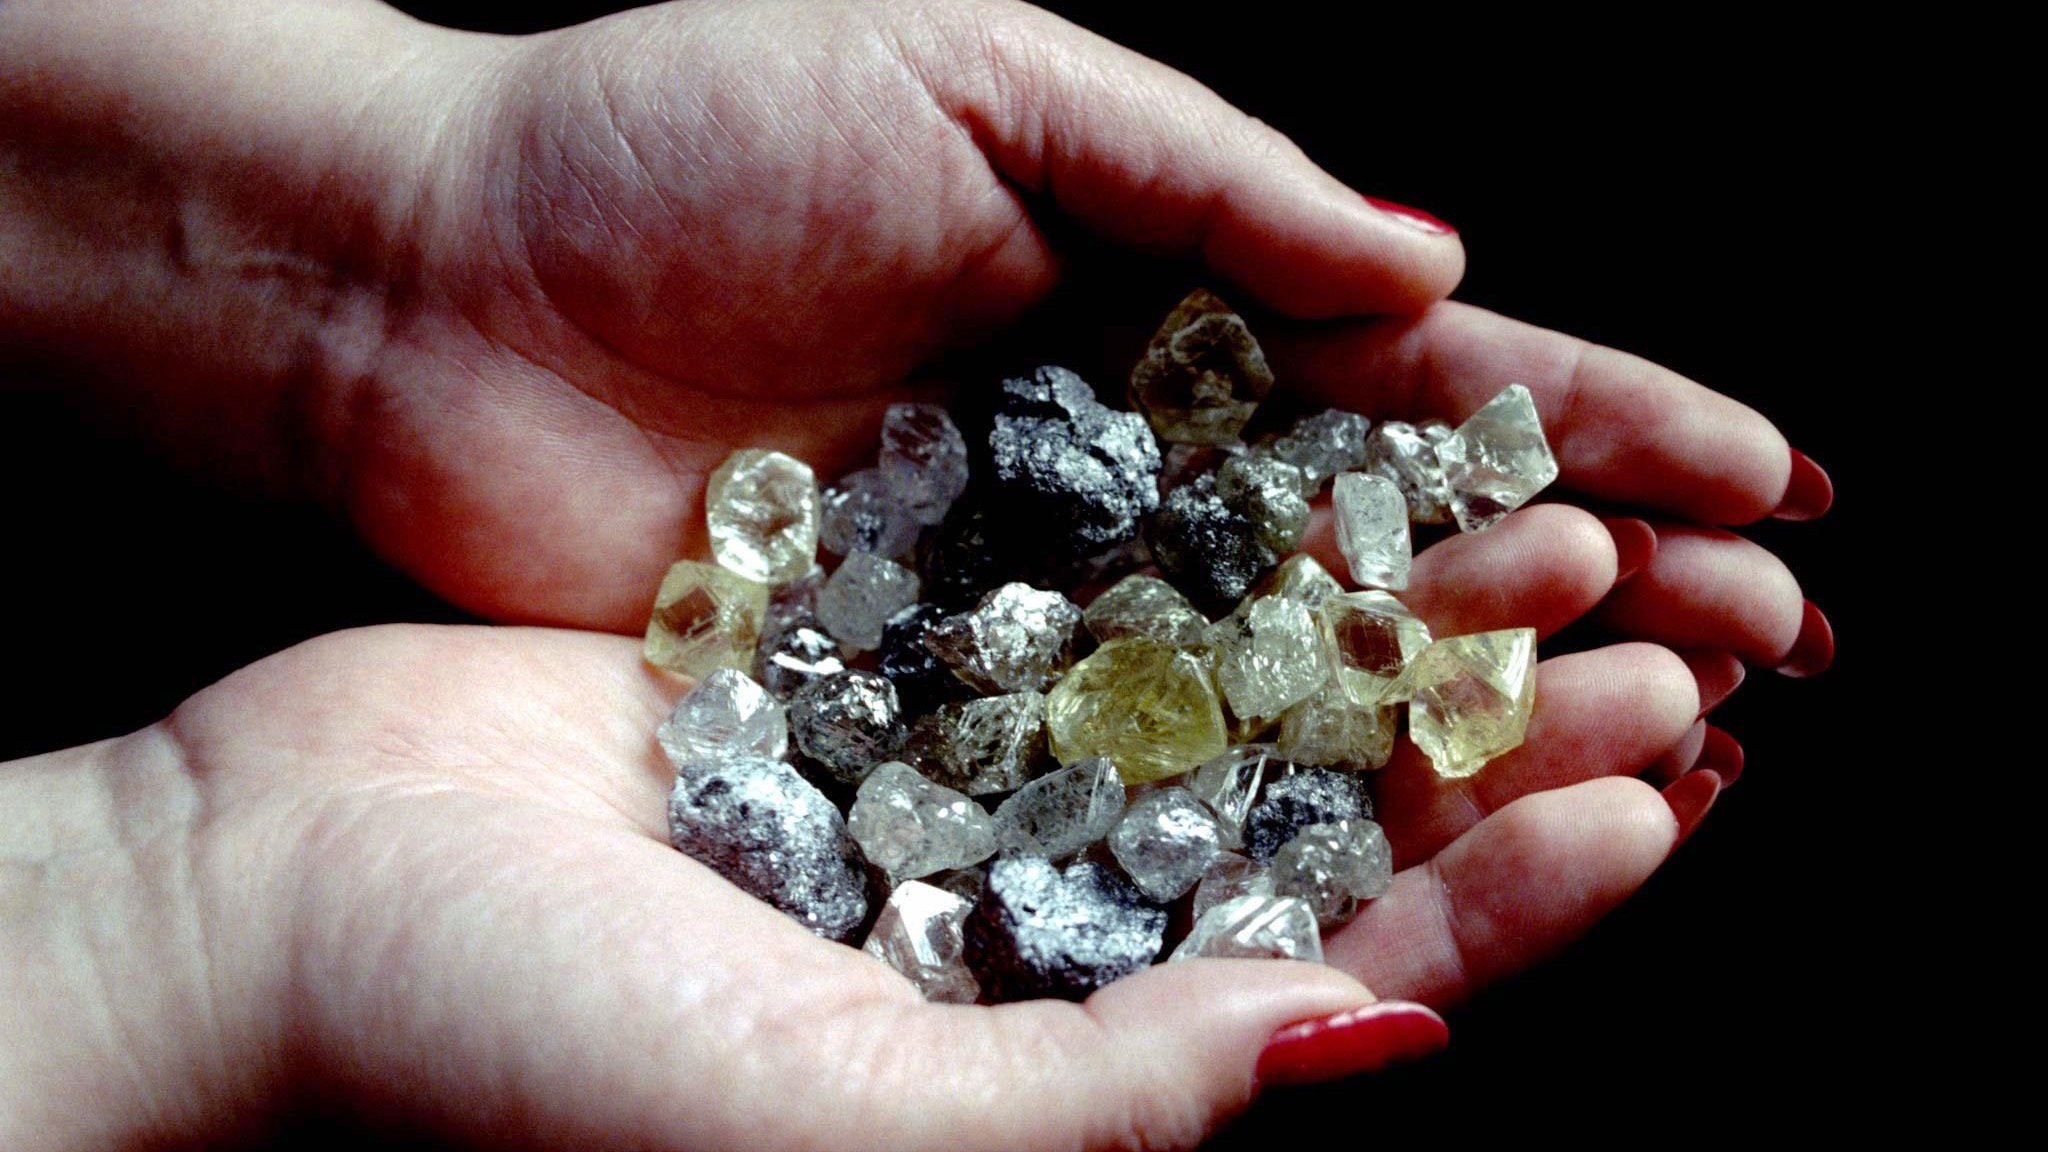 """A worker holds a handful of uncut diamonds found in the giant sand-pit called """"Udachny"""" (Lucky) in Siberia, March 6, where around 90 percent of Russian diamonds are found. A new agreement is expected to be signed soon between the Russian Federation and the South-African diamond corporation De Beers on the annual sale of Russian uncut diamonds, according to reports. - RTXHMX3"""